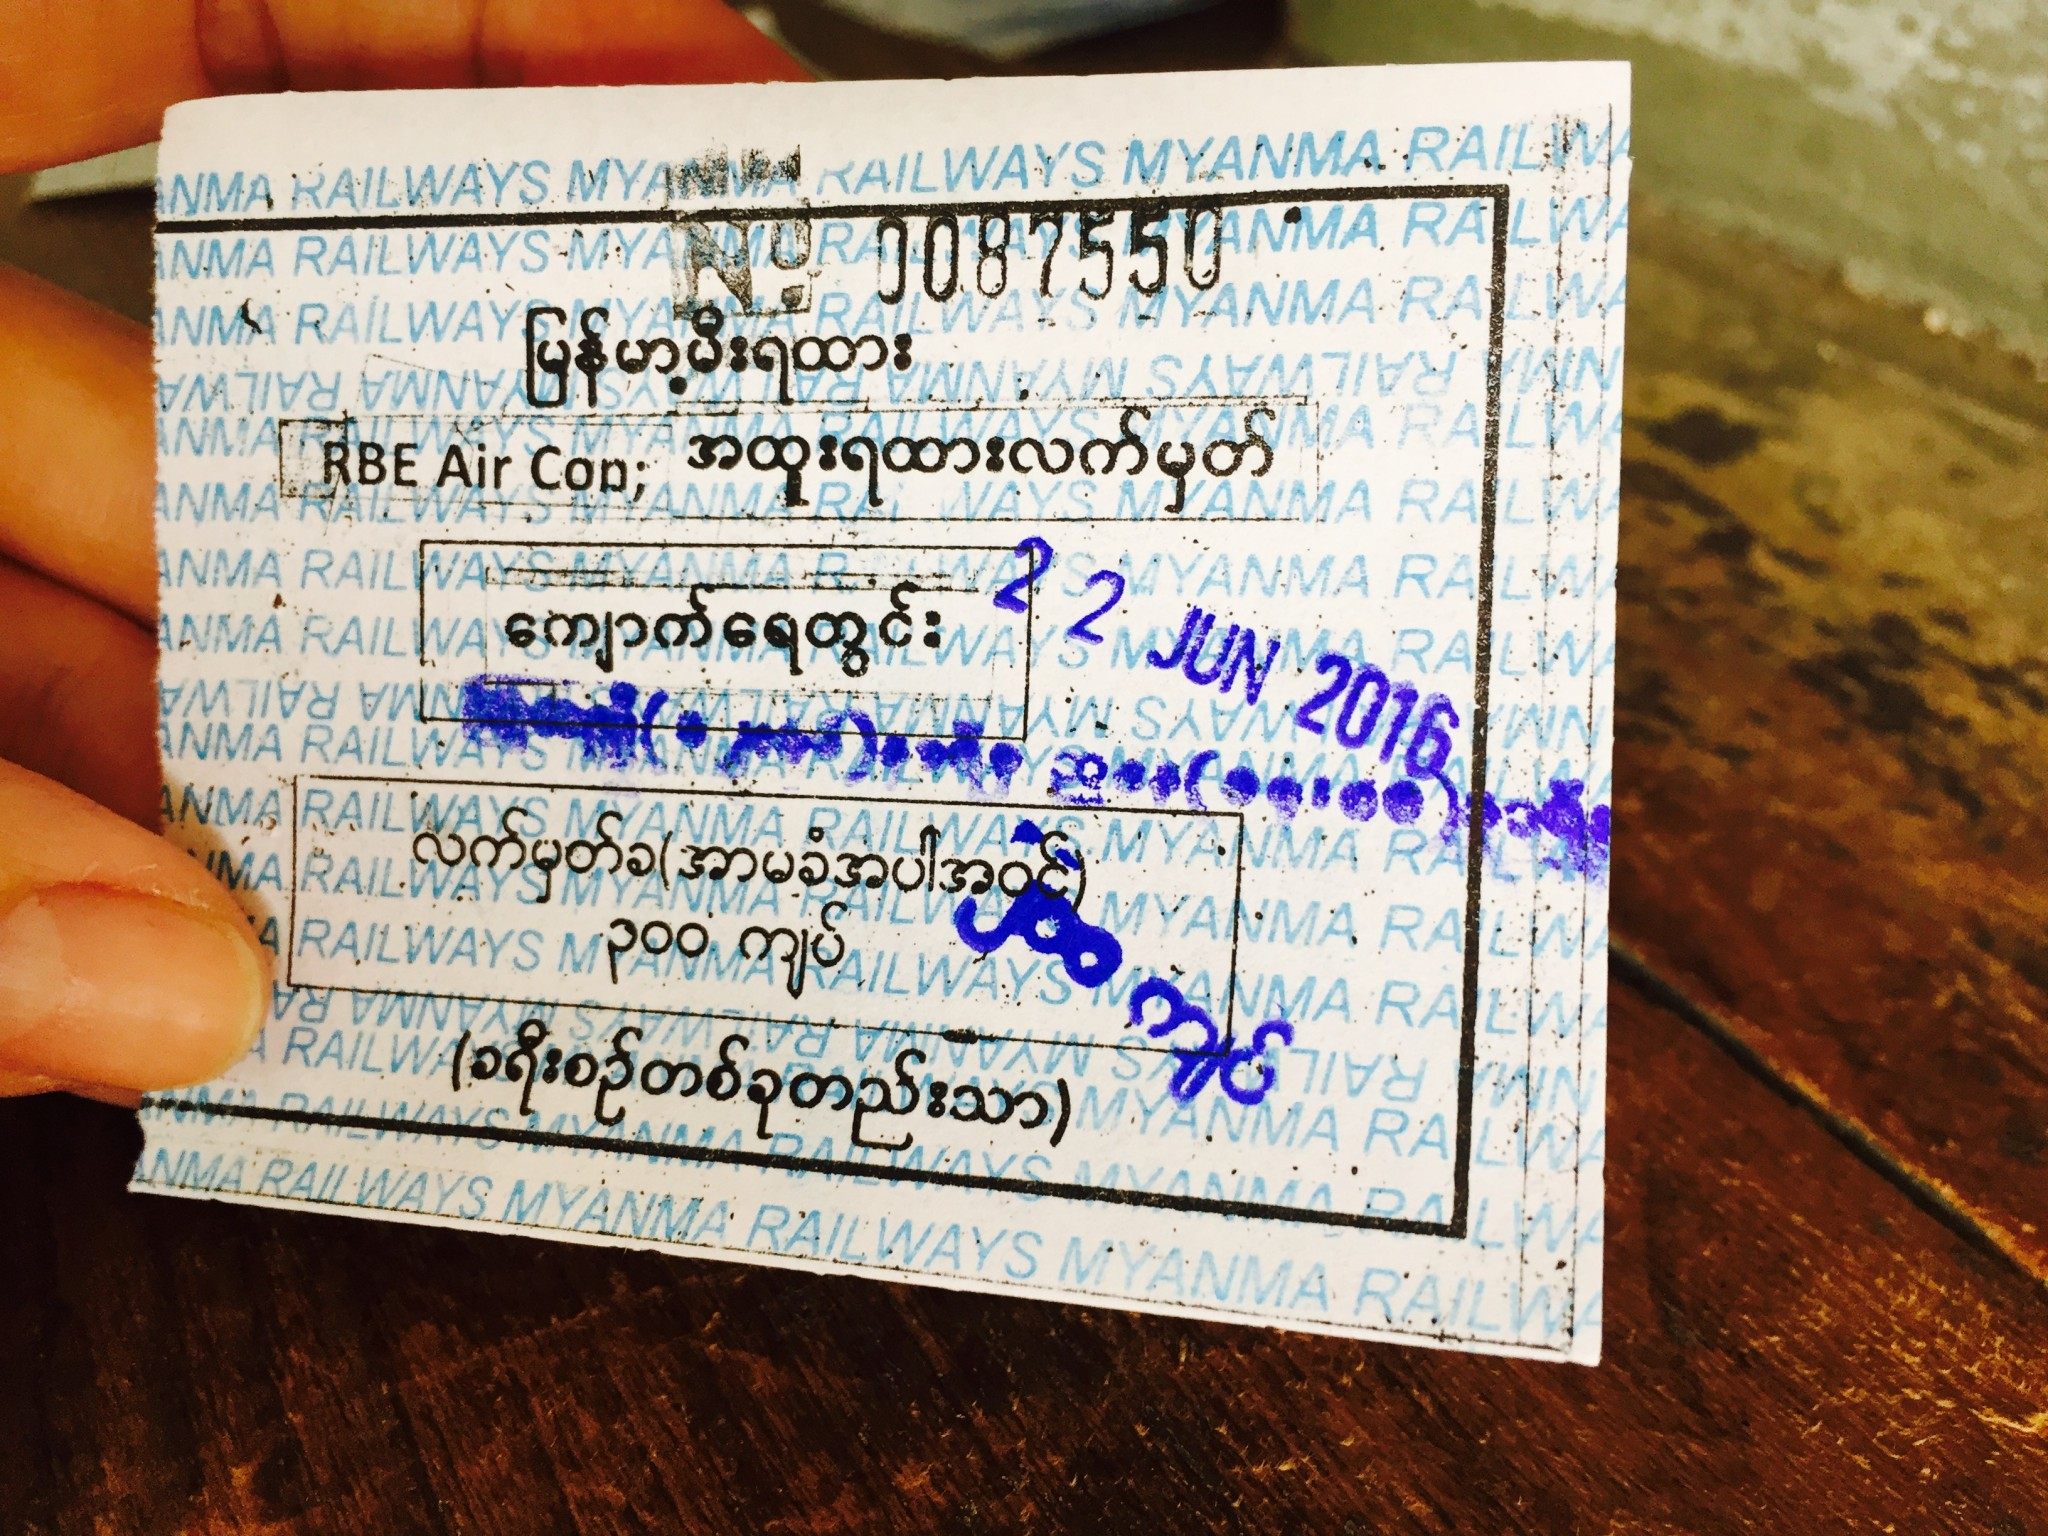 Ticket for Circular Train, Yangon